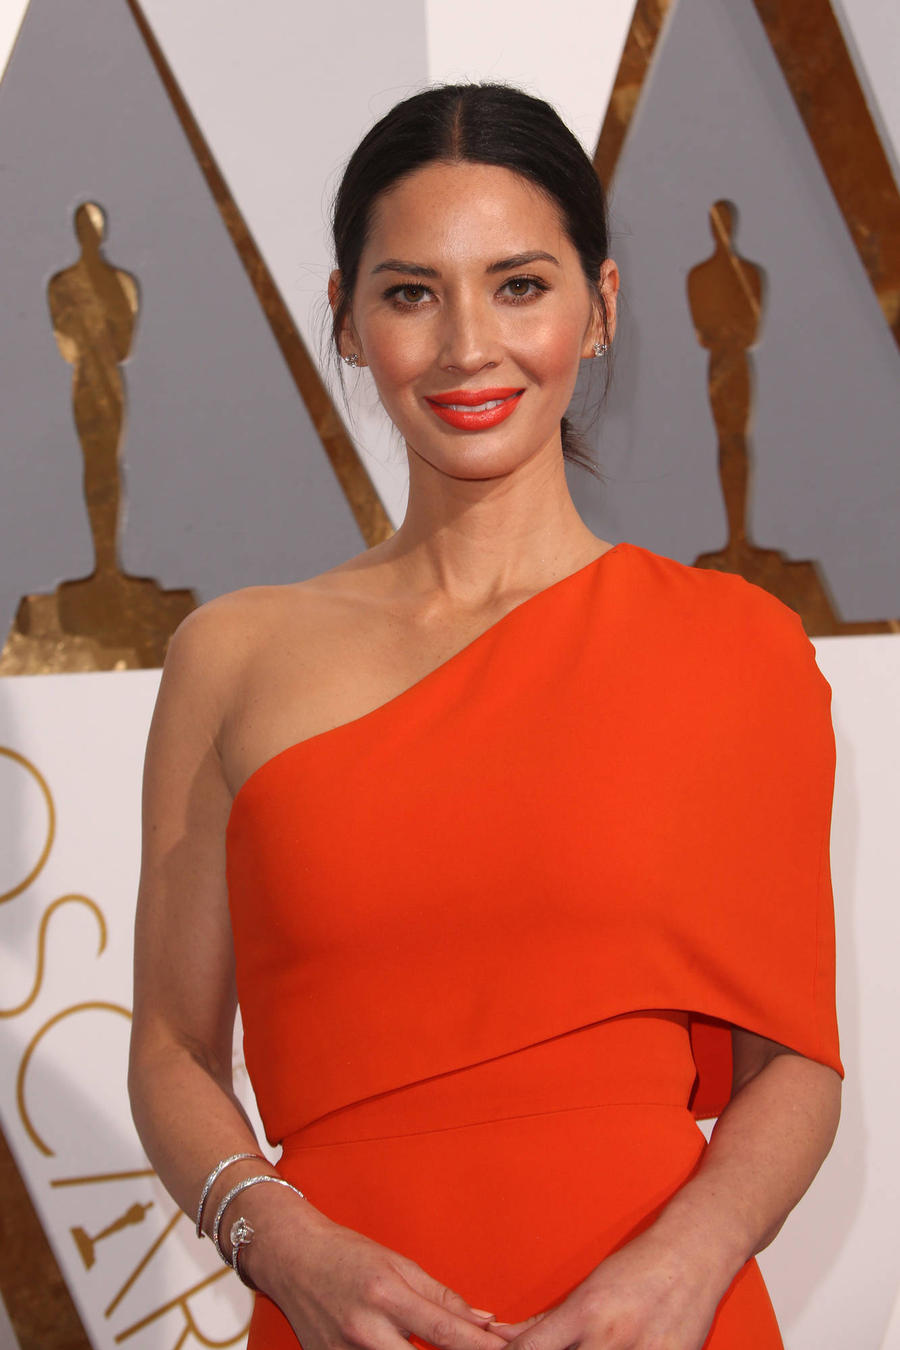 Olivia Munn Got 'A Bunch' Of Her Eggs Frozen